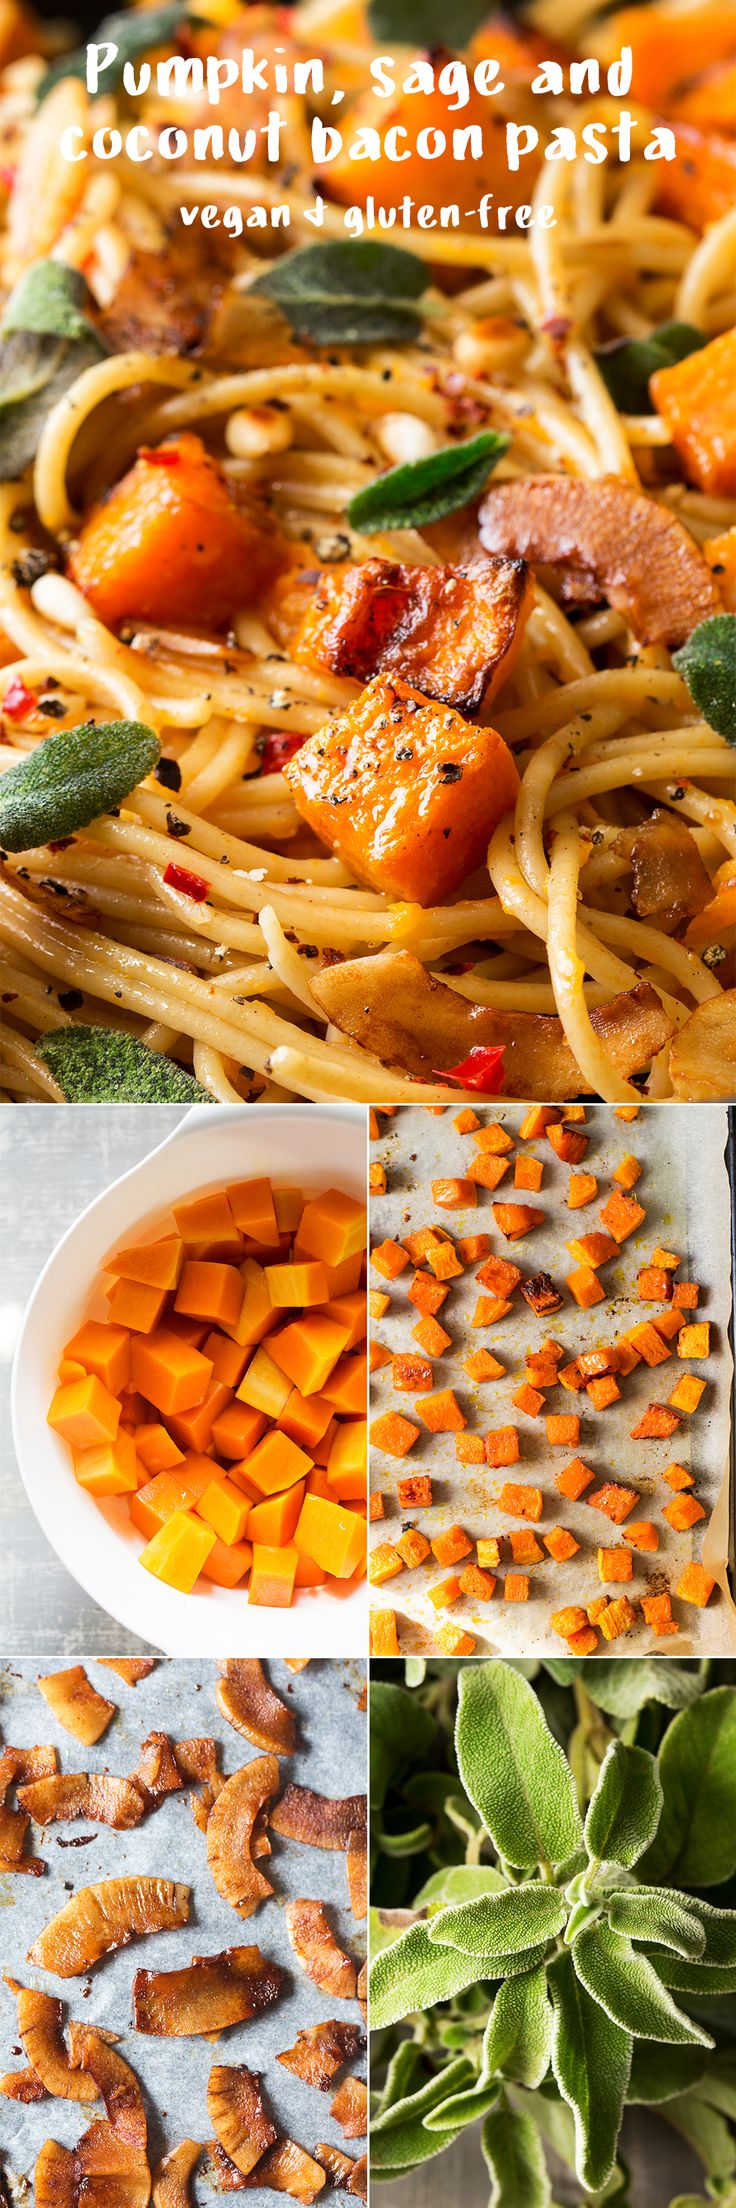 #pumpkin #sage and #coconutbacon #pasta - #easy to make, filling, naturally #vegan and can be #glutenfree  #recipe #recipes #vegetarian #lunch #dinner #meal #entree #spaghetti